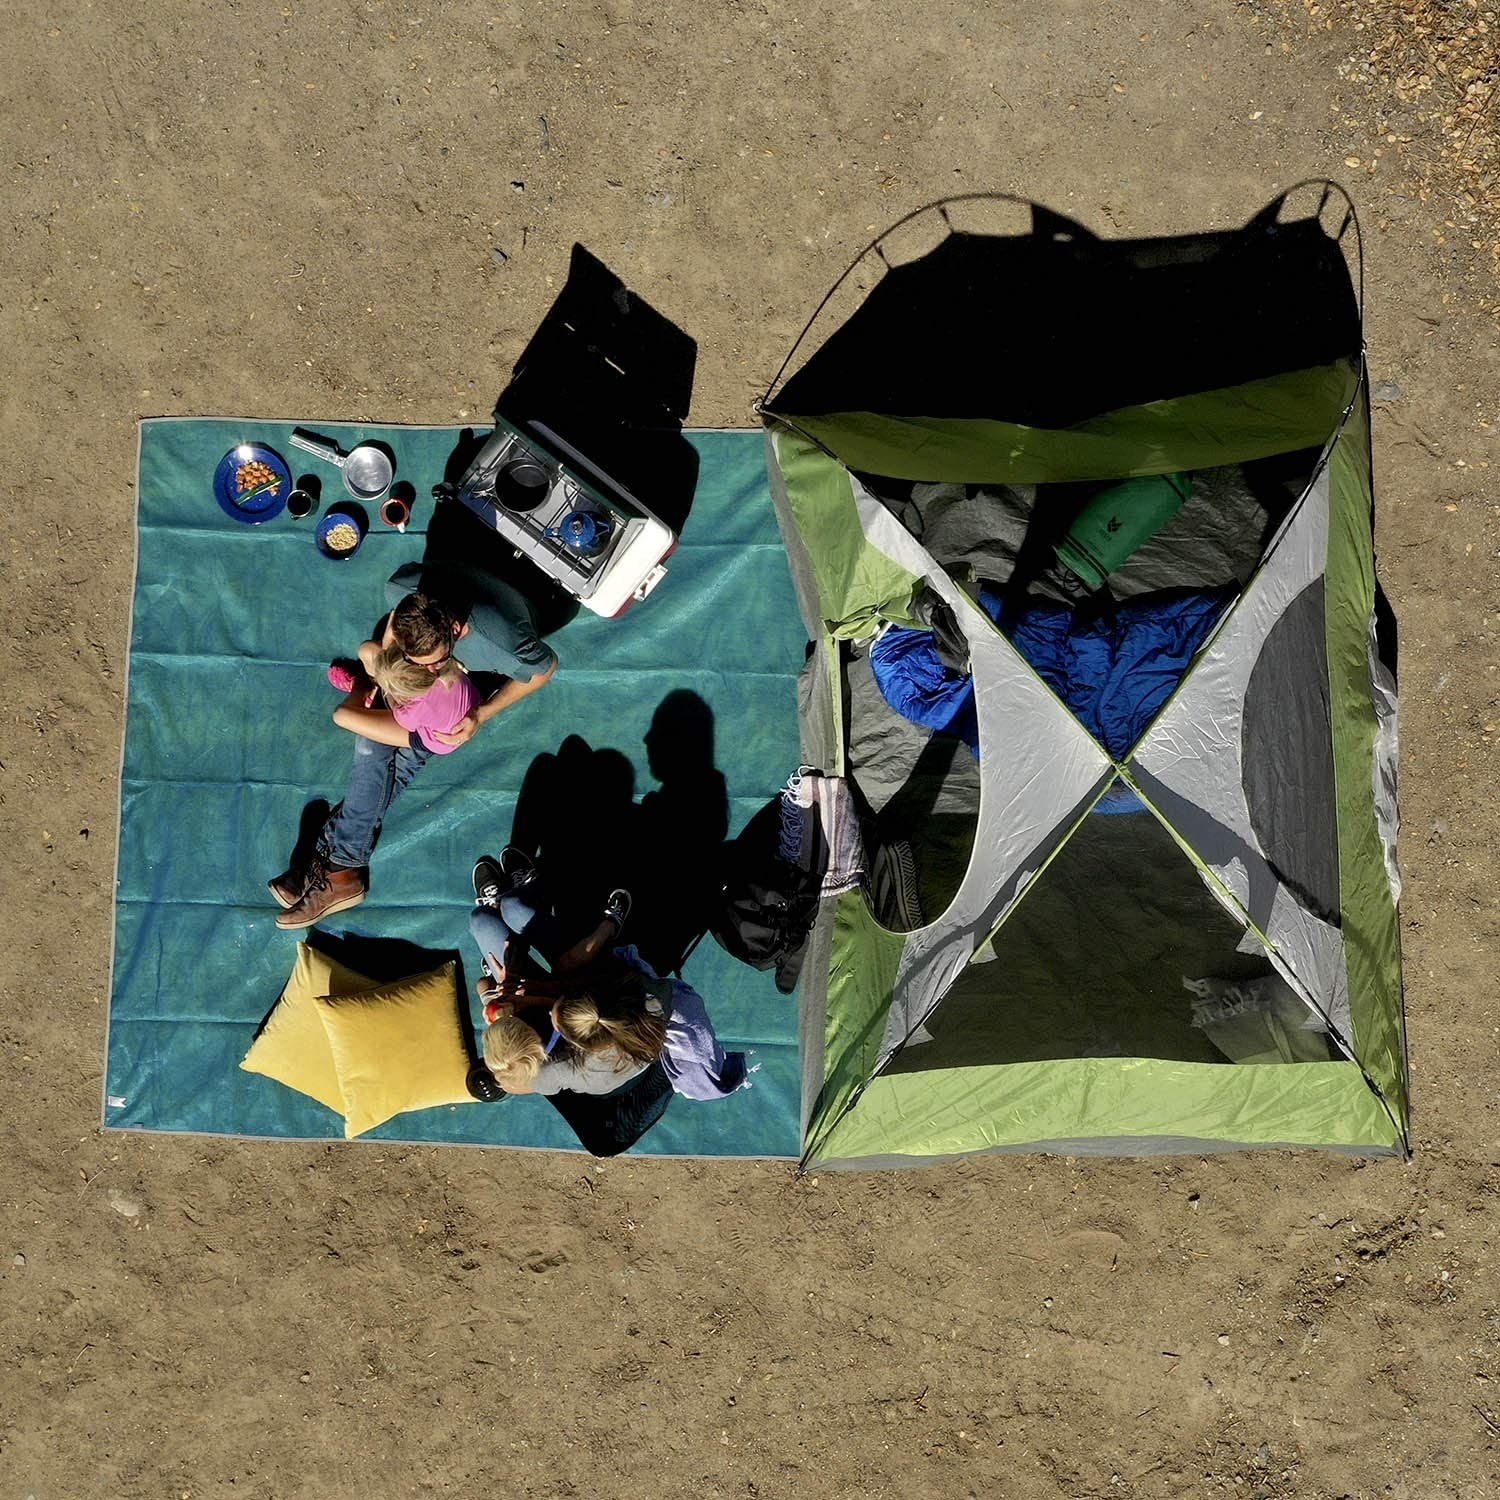 Overhead shot of the mat with two people sitting on it and plenty of room for their stuff